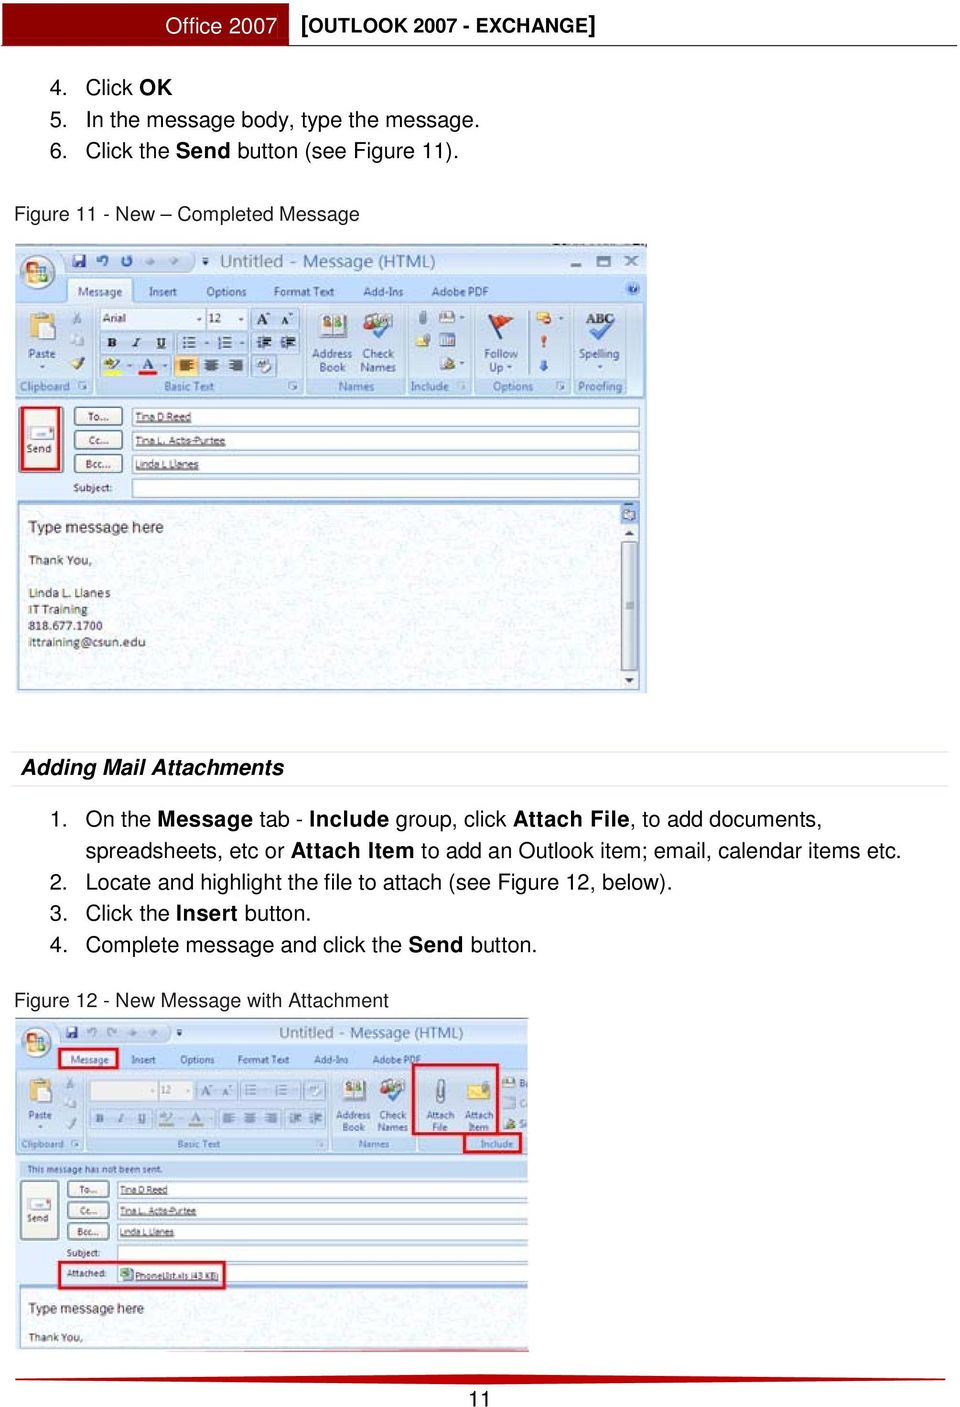 On the Message tab - Include group, click Attach File, to add documents, spreadsheets, etc or Attach Item to add an Outlook